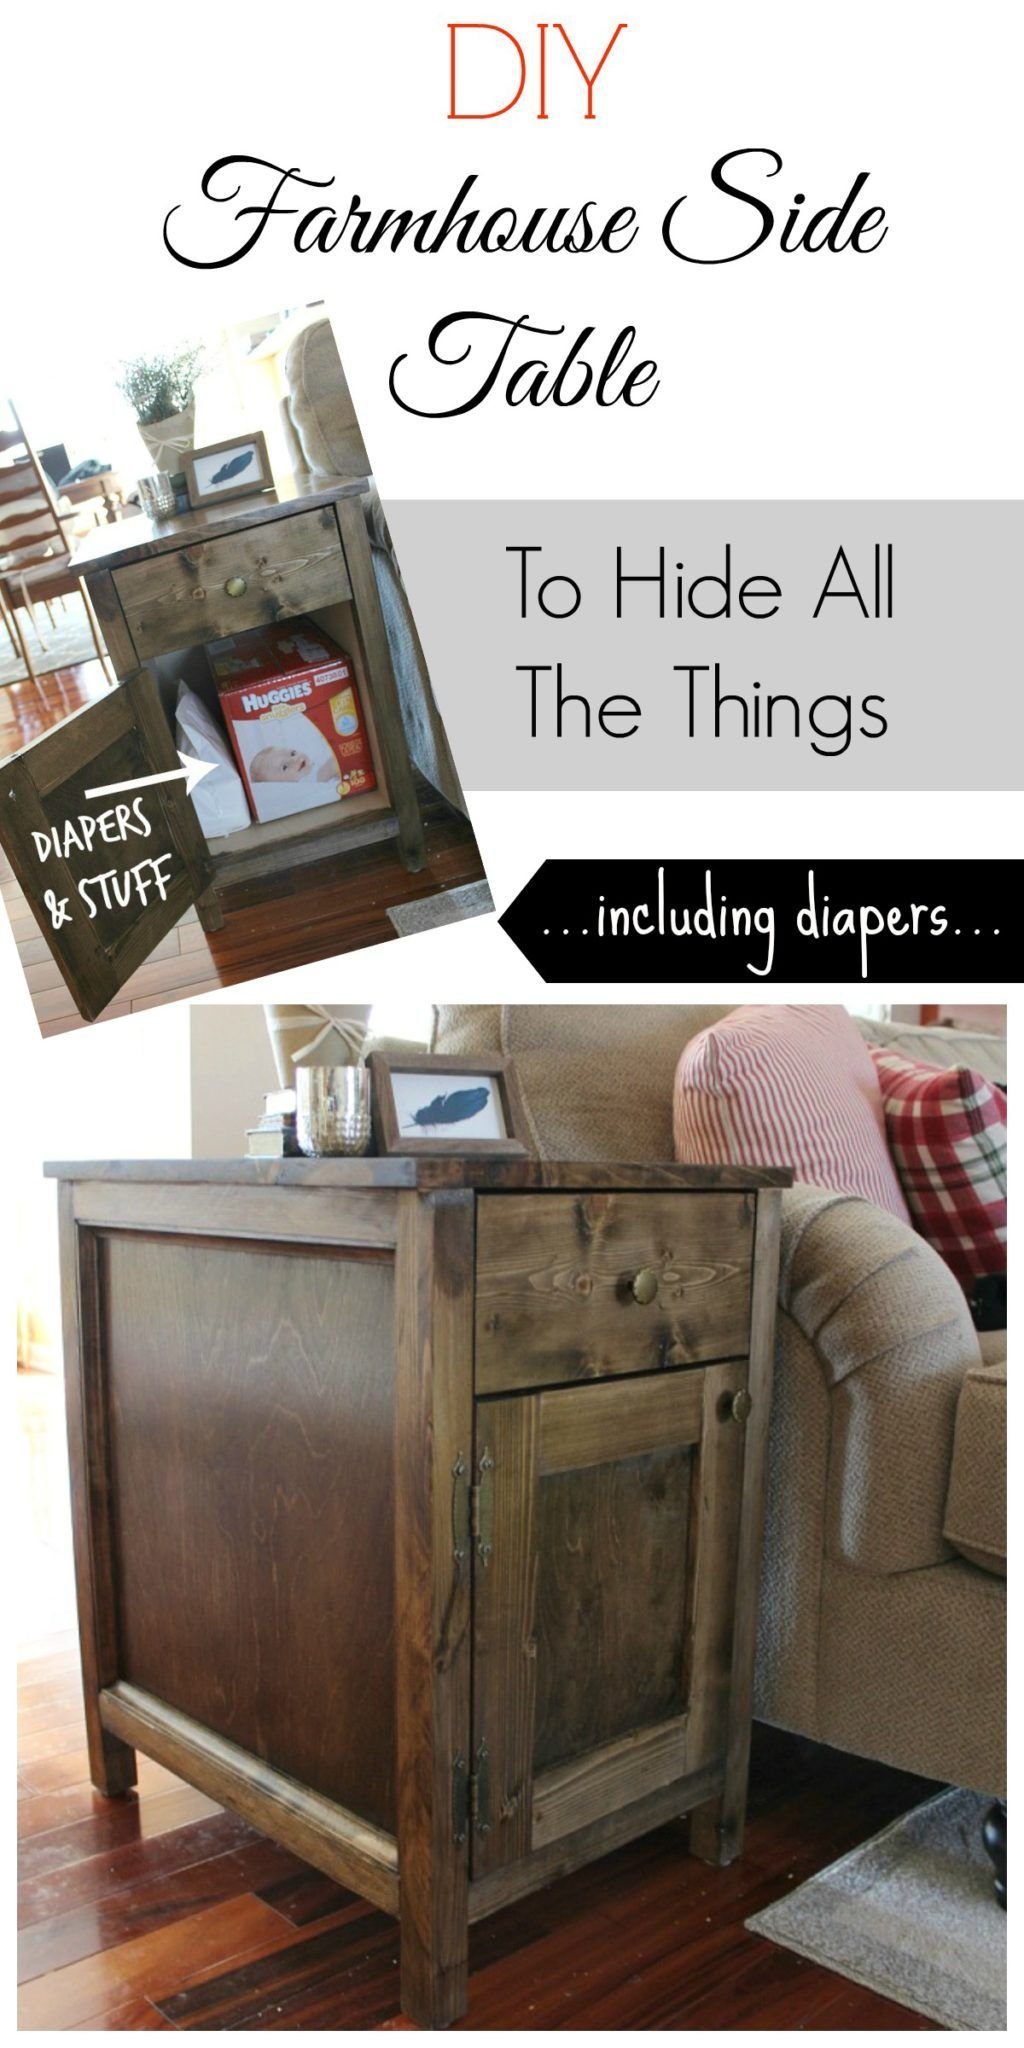 Diy Farmhouse Side Table With Storage Aka The Diaper Cabinet End Table Plans Diy End Tables Side Table With Storage